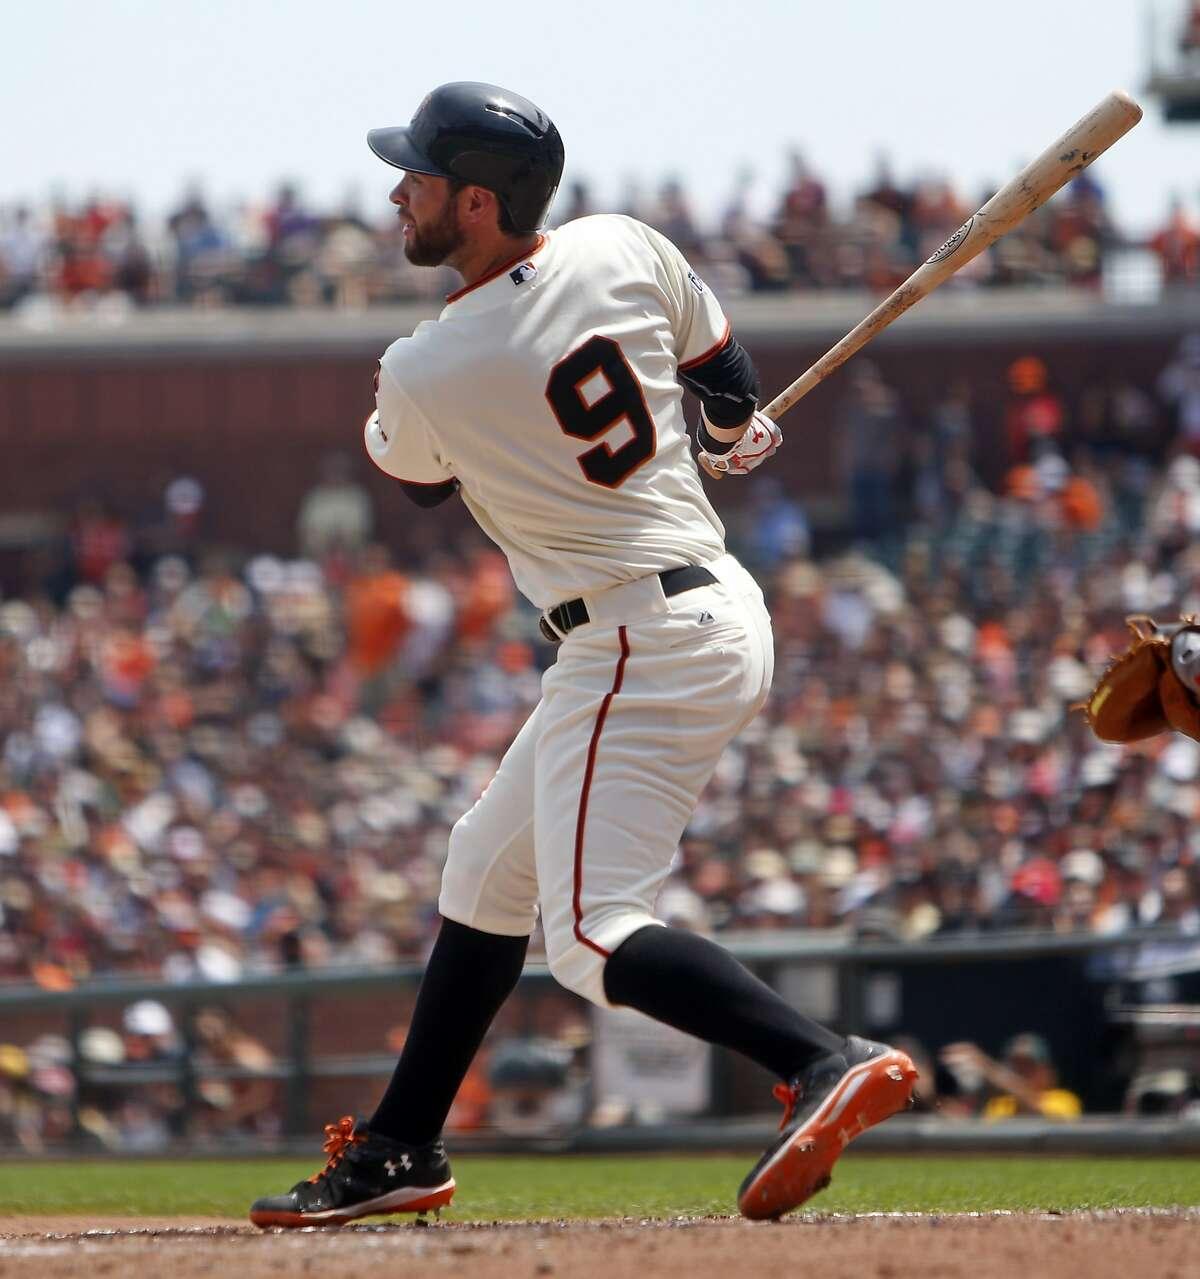 San Francisco Giants' Brandon Belt watches his RBI double in 4th inning against Washington Nationals during MLB game at AT&T Park in San Francisco, Calif., on Sunday, Aug. 16, 2015.